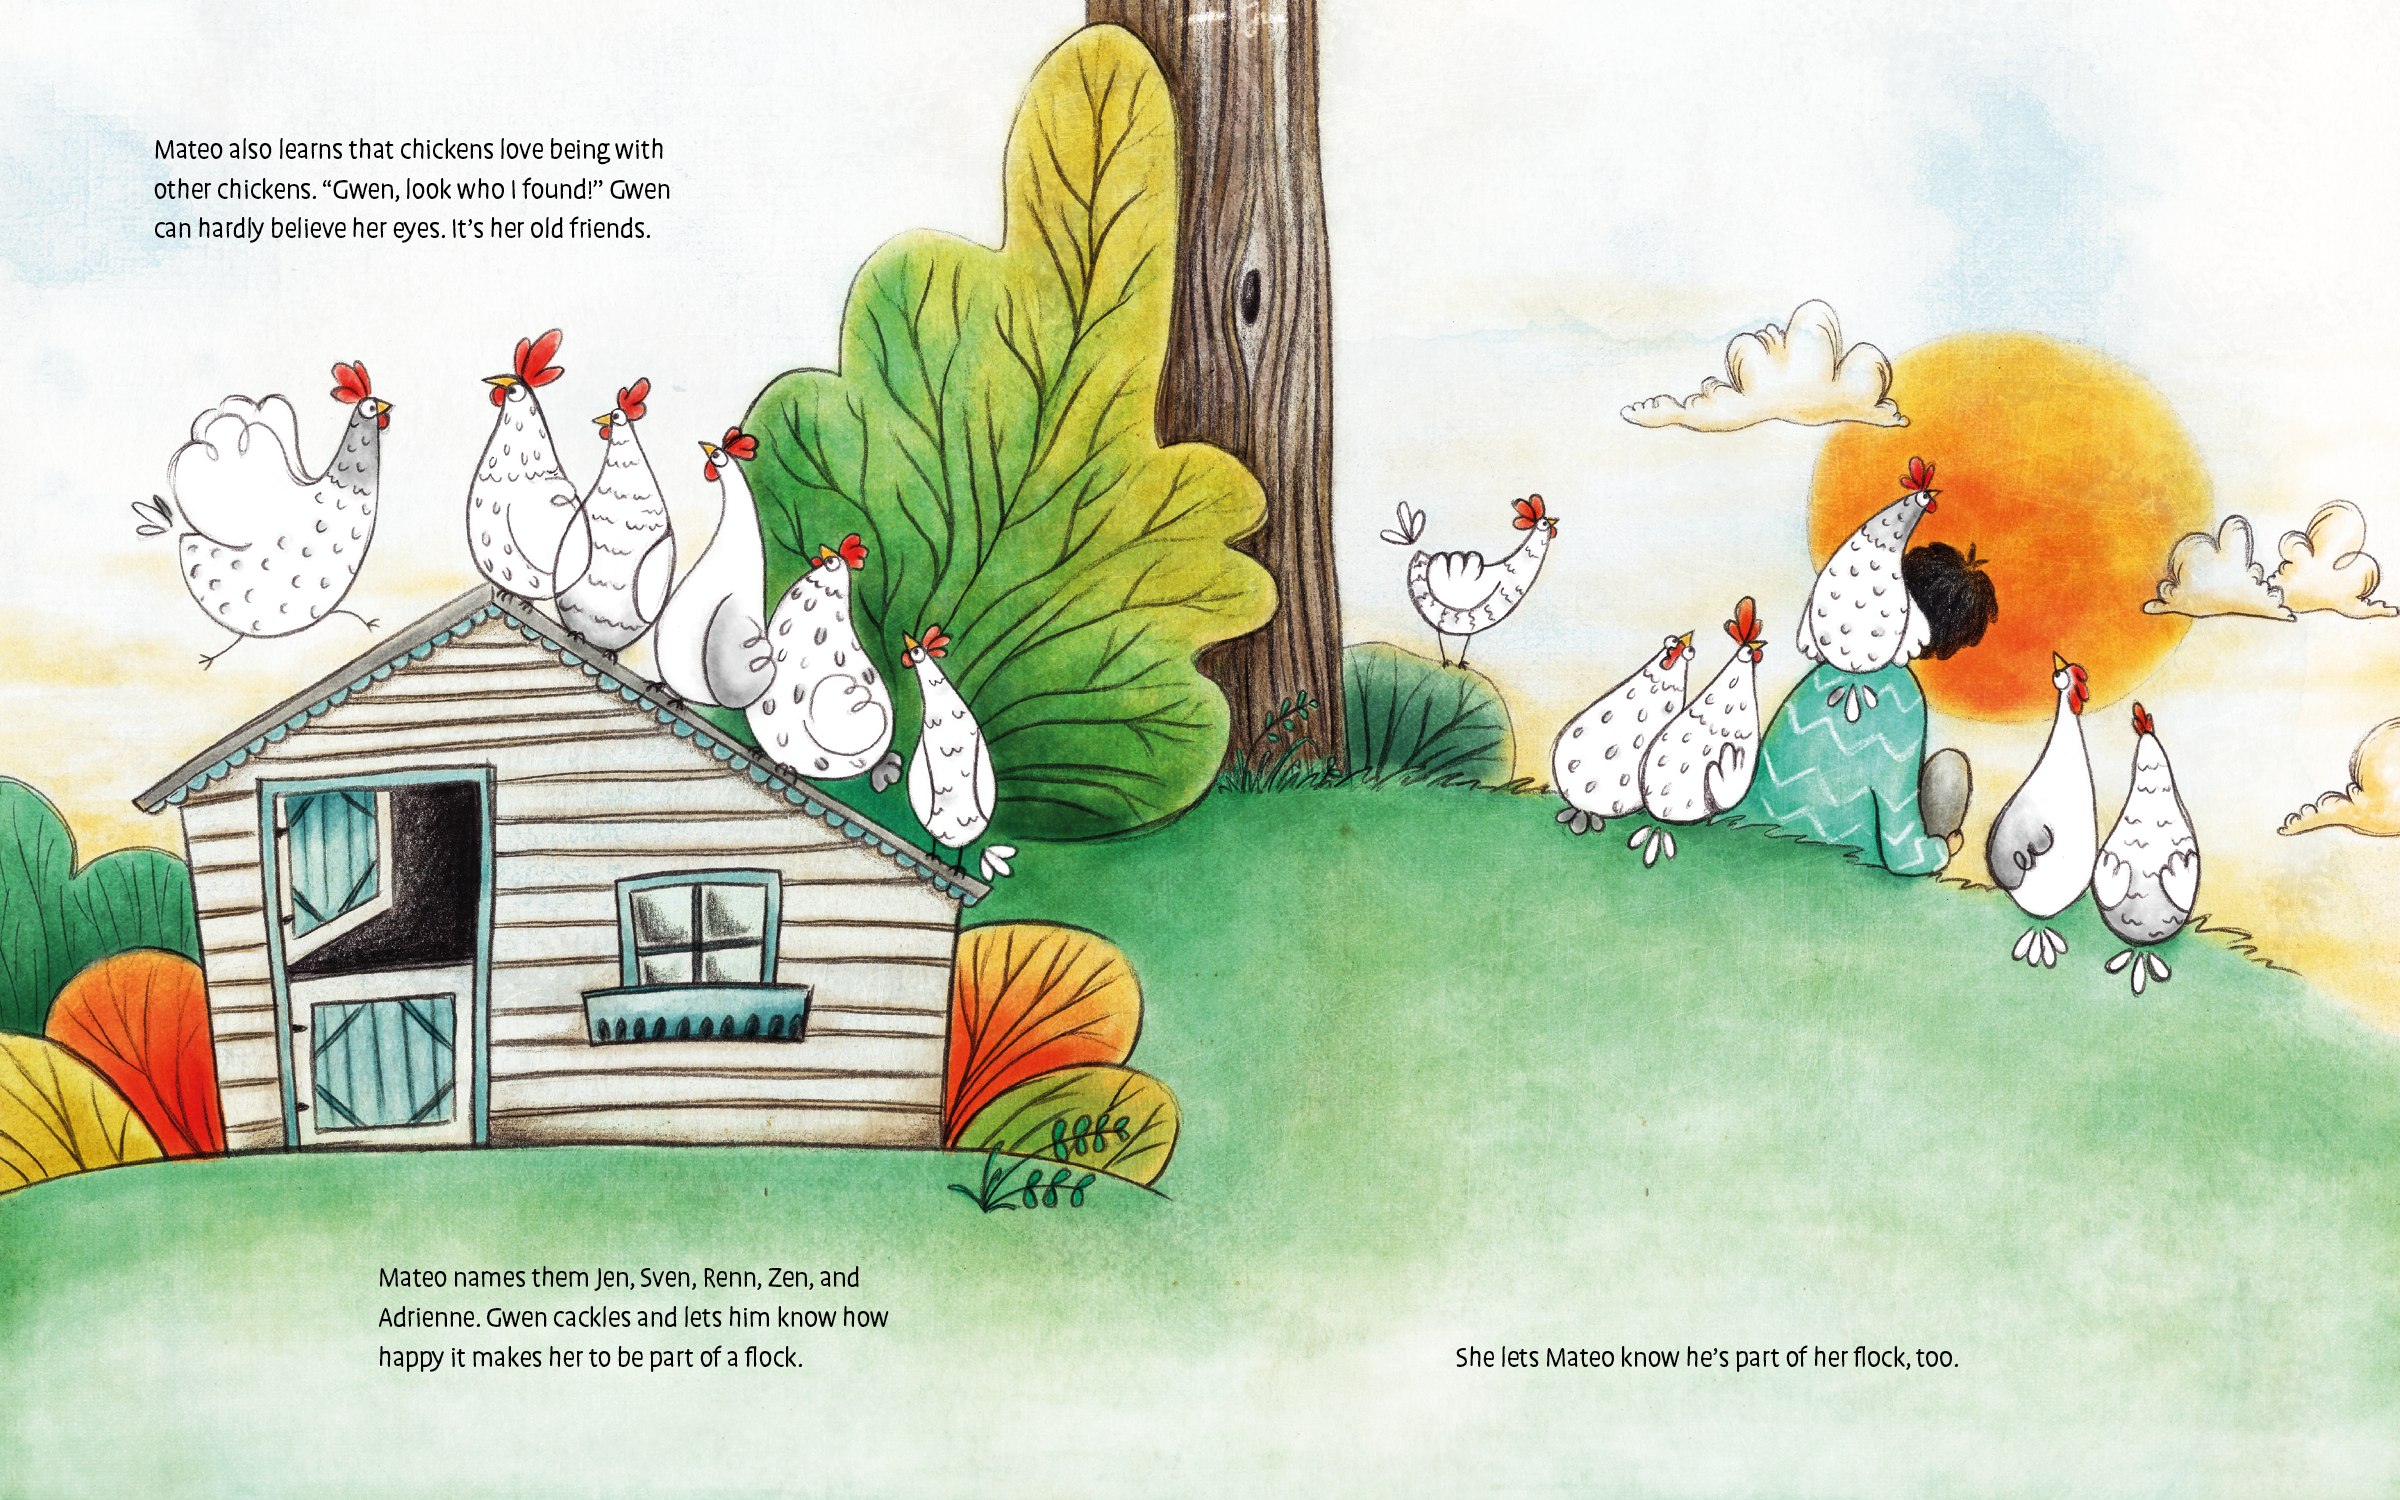 In the children's book,   Gwen the Rescue Hen  , Gwen escapes from an egg laying hen house and finds her way to a boy named Mateo. Together they learn how extraordinary an ordinary chicken really is.   Illustration from Gwen the Rescue Hen.